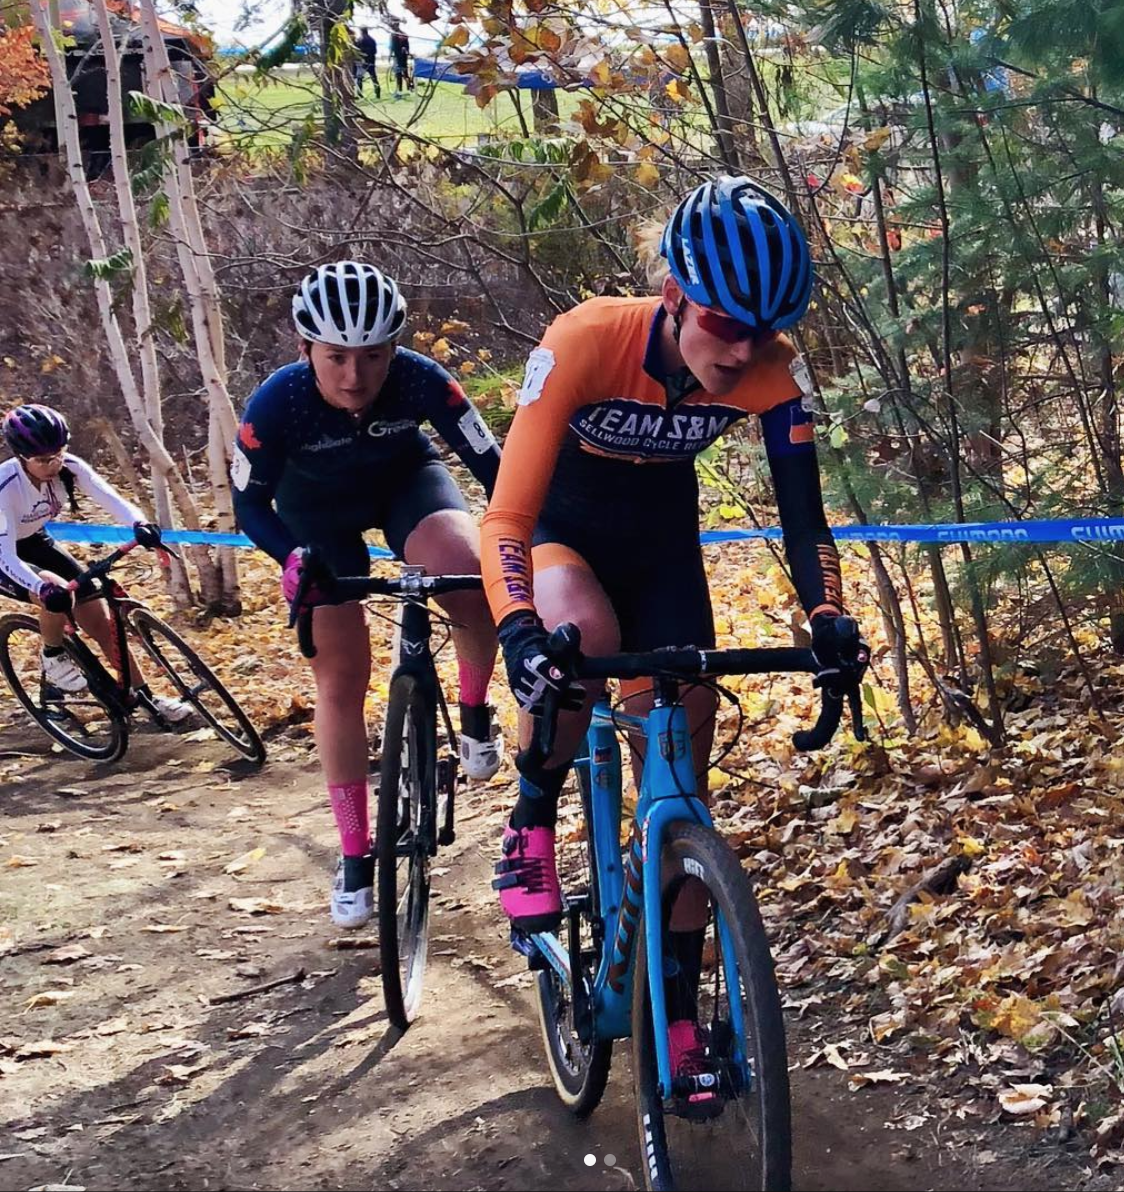 Sophie putting the hammer down in Sunday's U23 race.